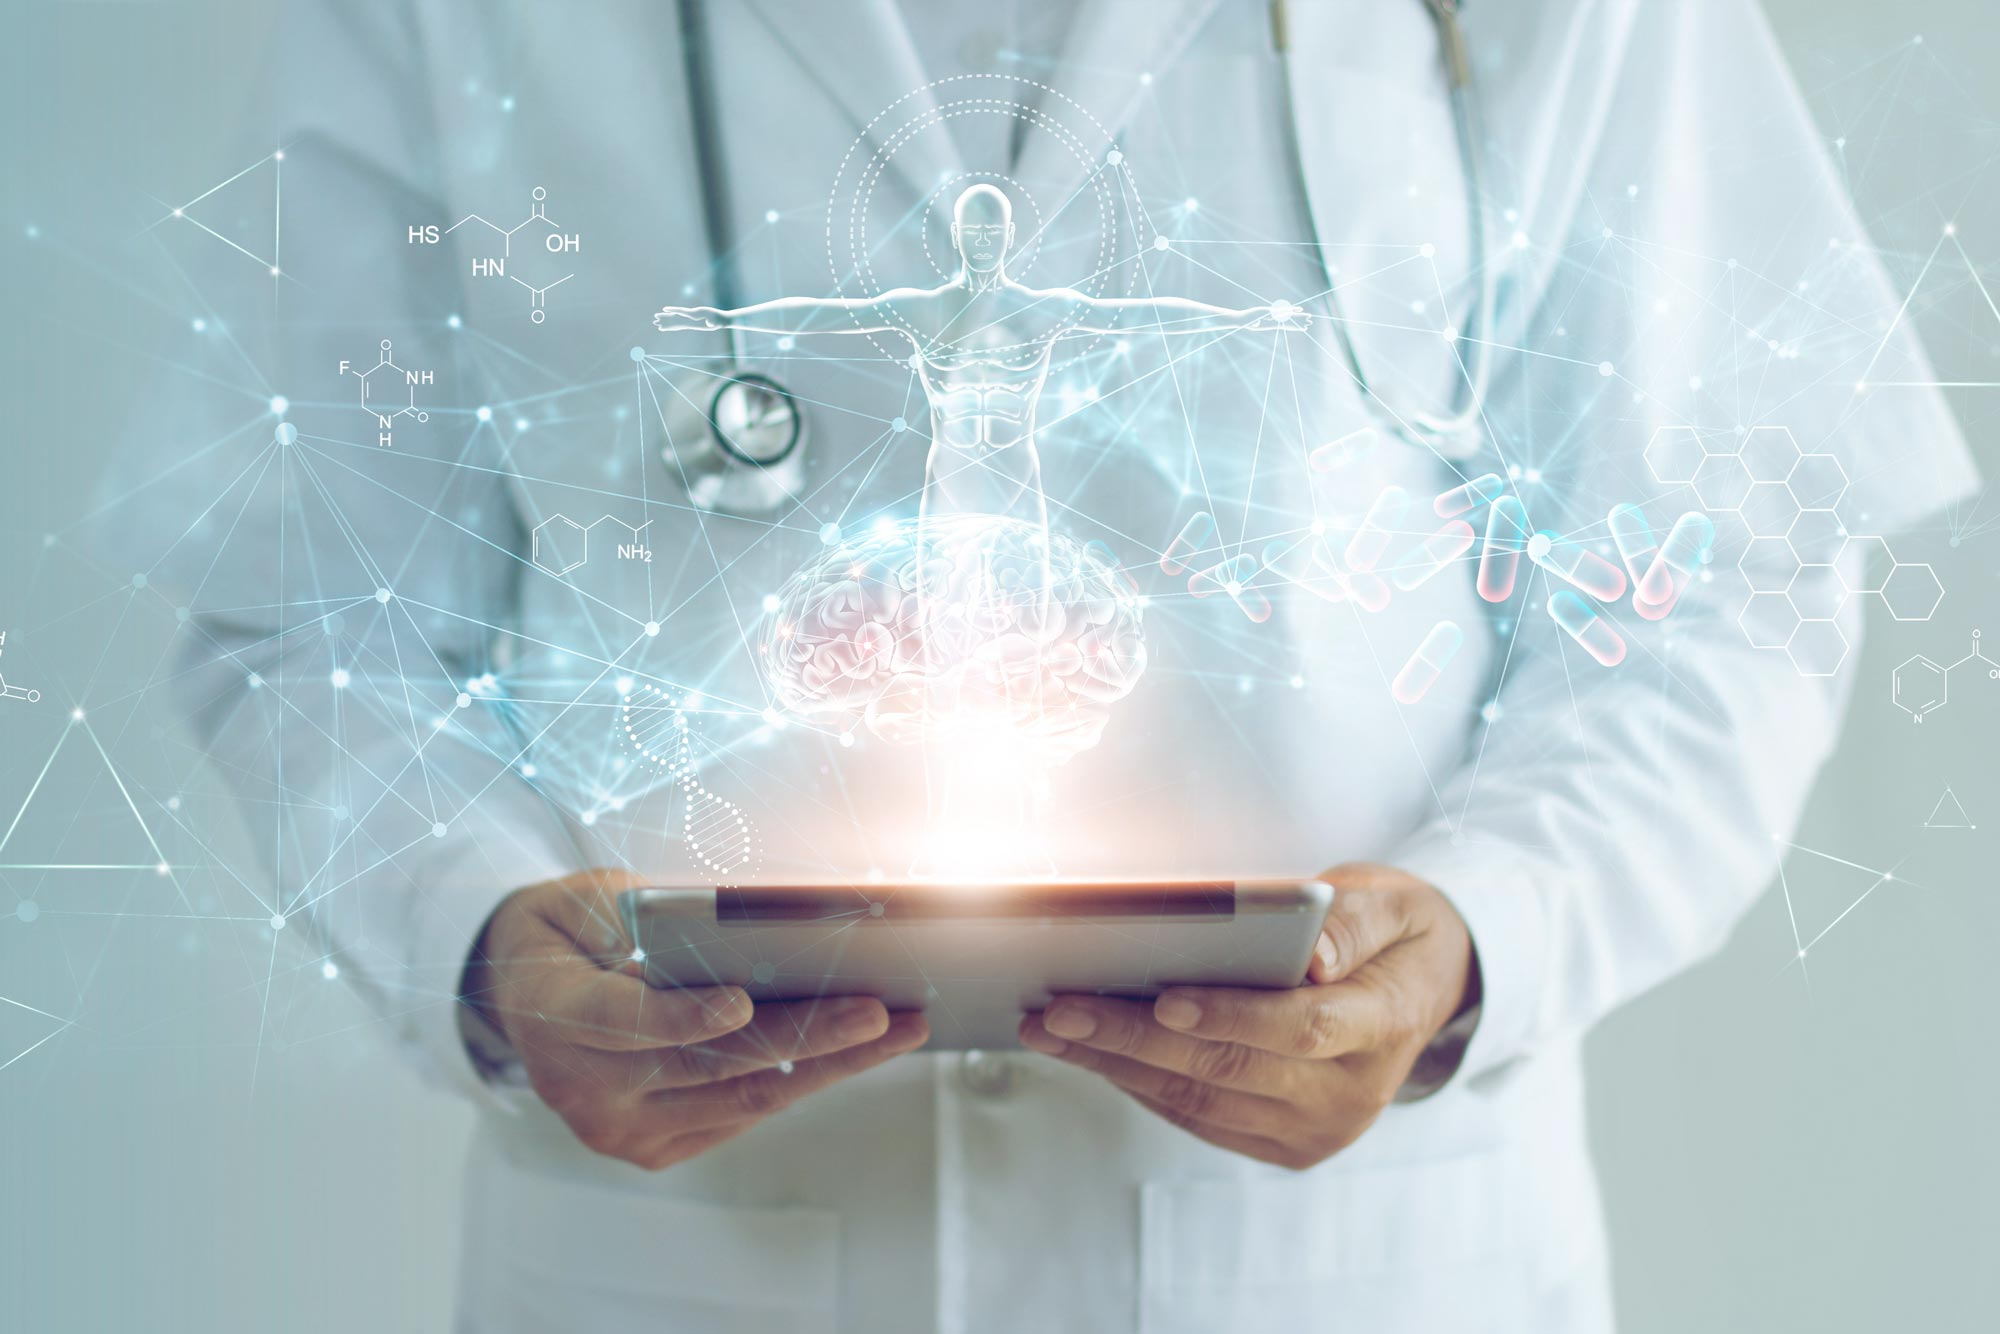 Physicians Urge Hospitals to Become 'Artificial Intelligence Ready'